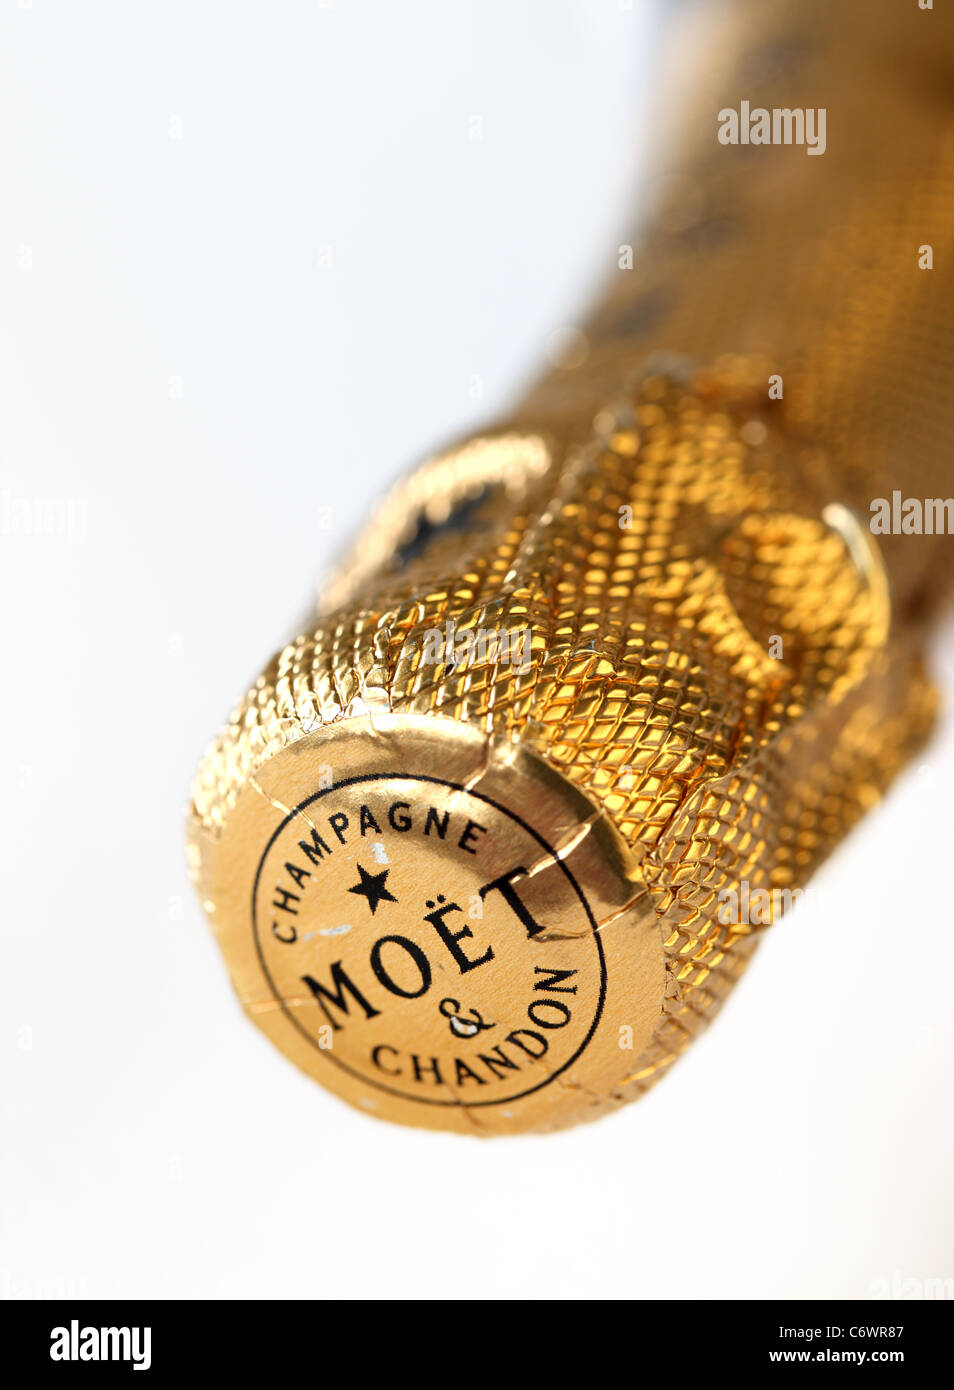 Close up of the gold foil top of an unopened bottle of Moet & Chandon, Champagne - Stock Image